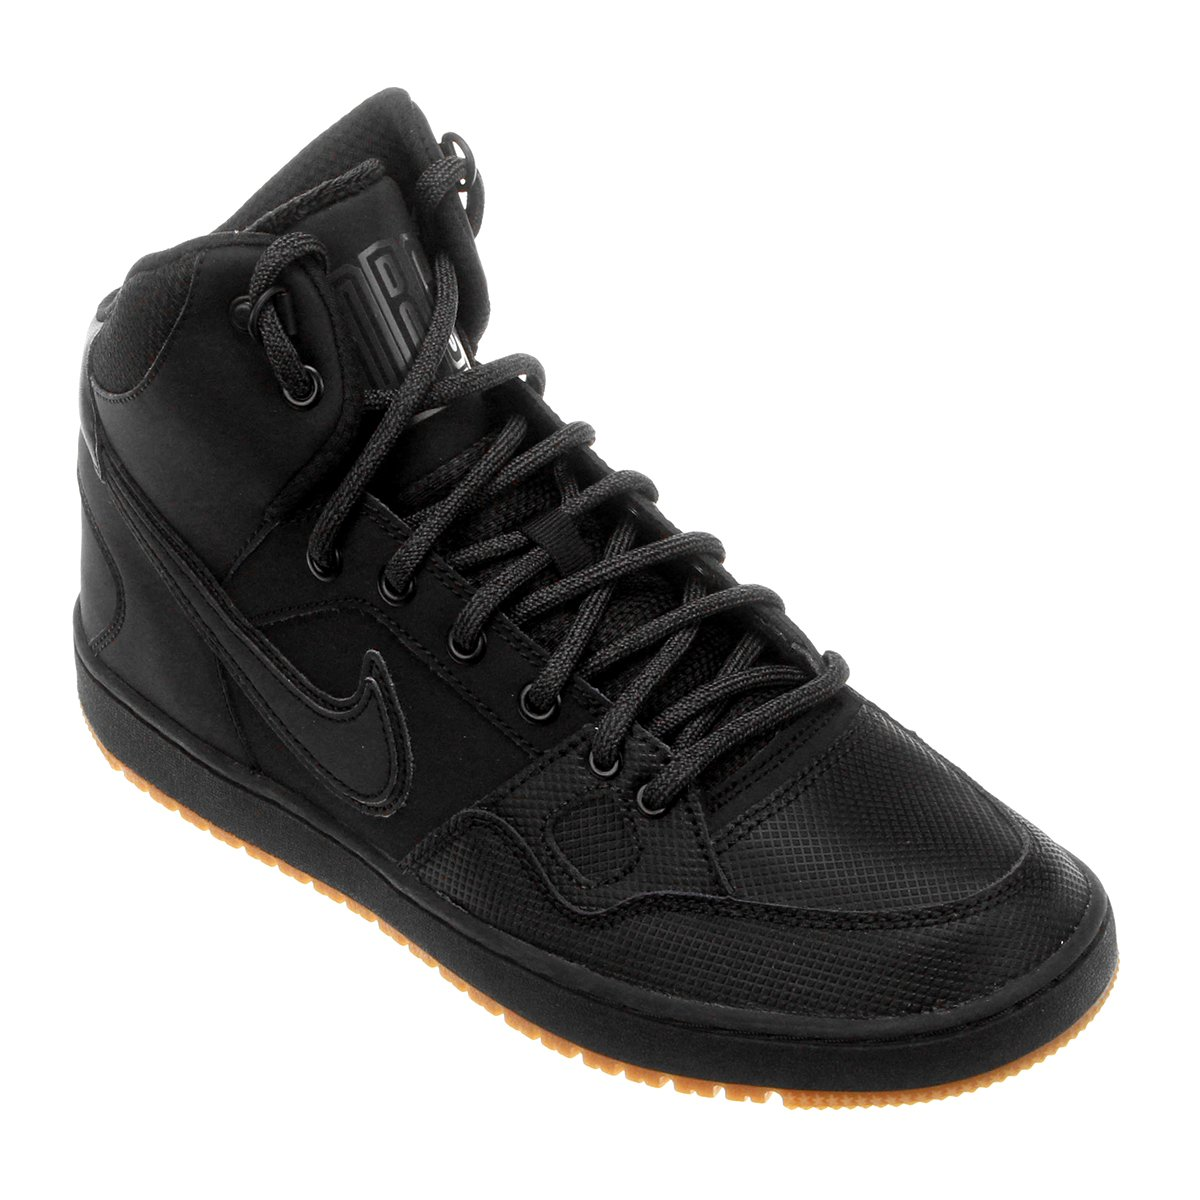 9f4a8fc7df Tênis Nike Son Of Force Mid Winter - Compre Agora